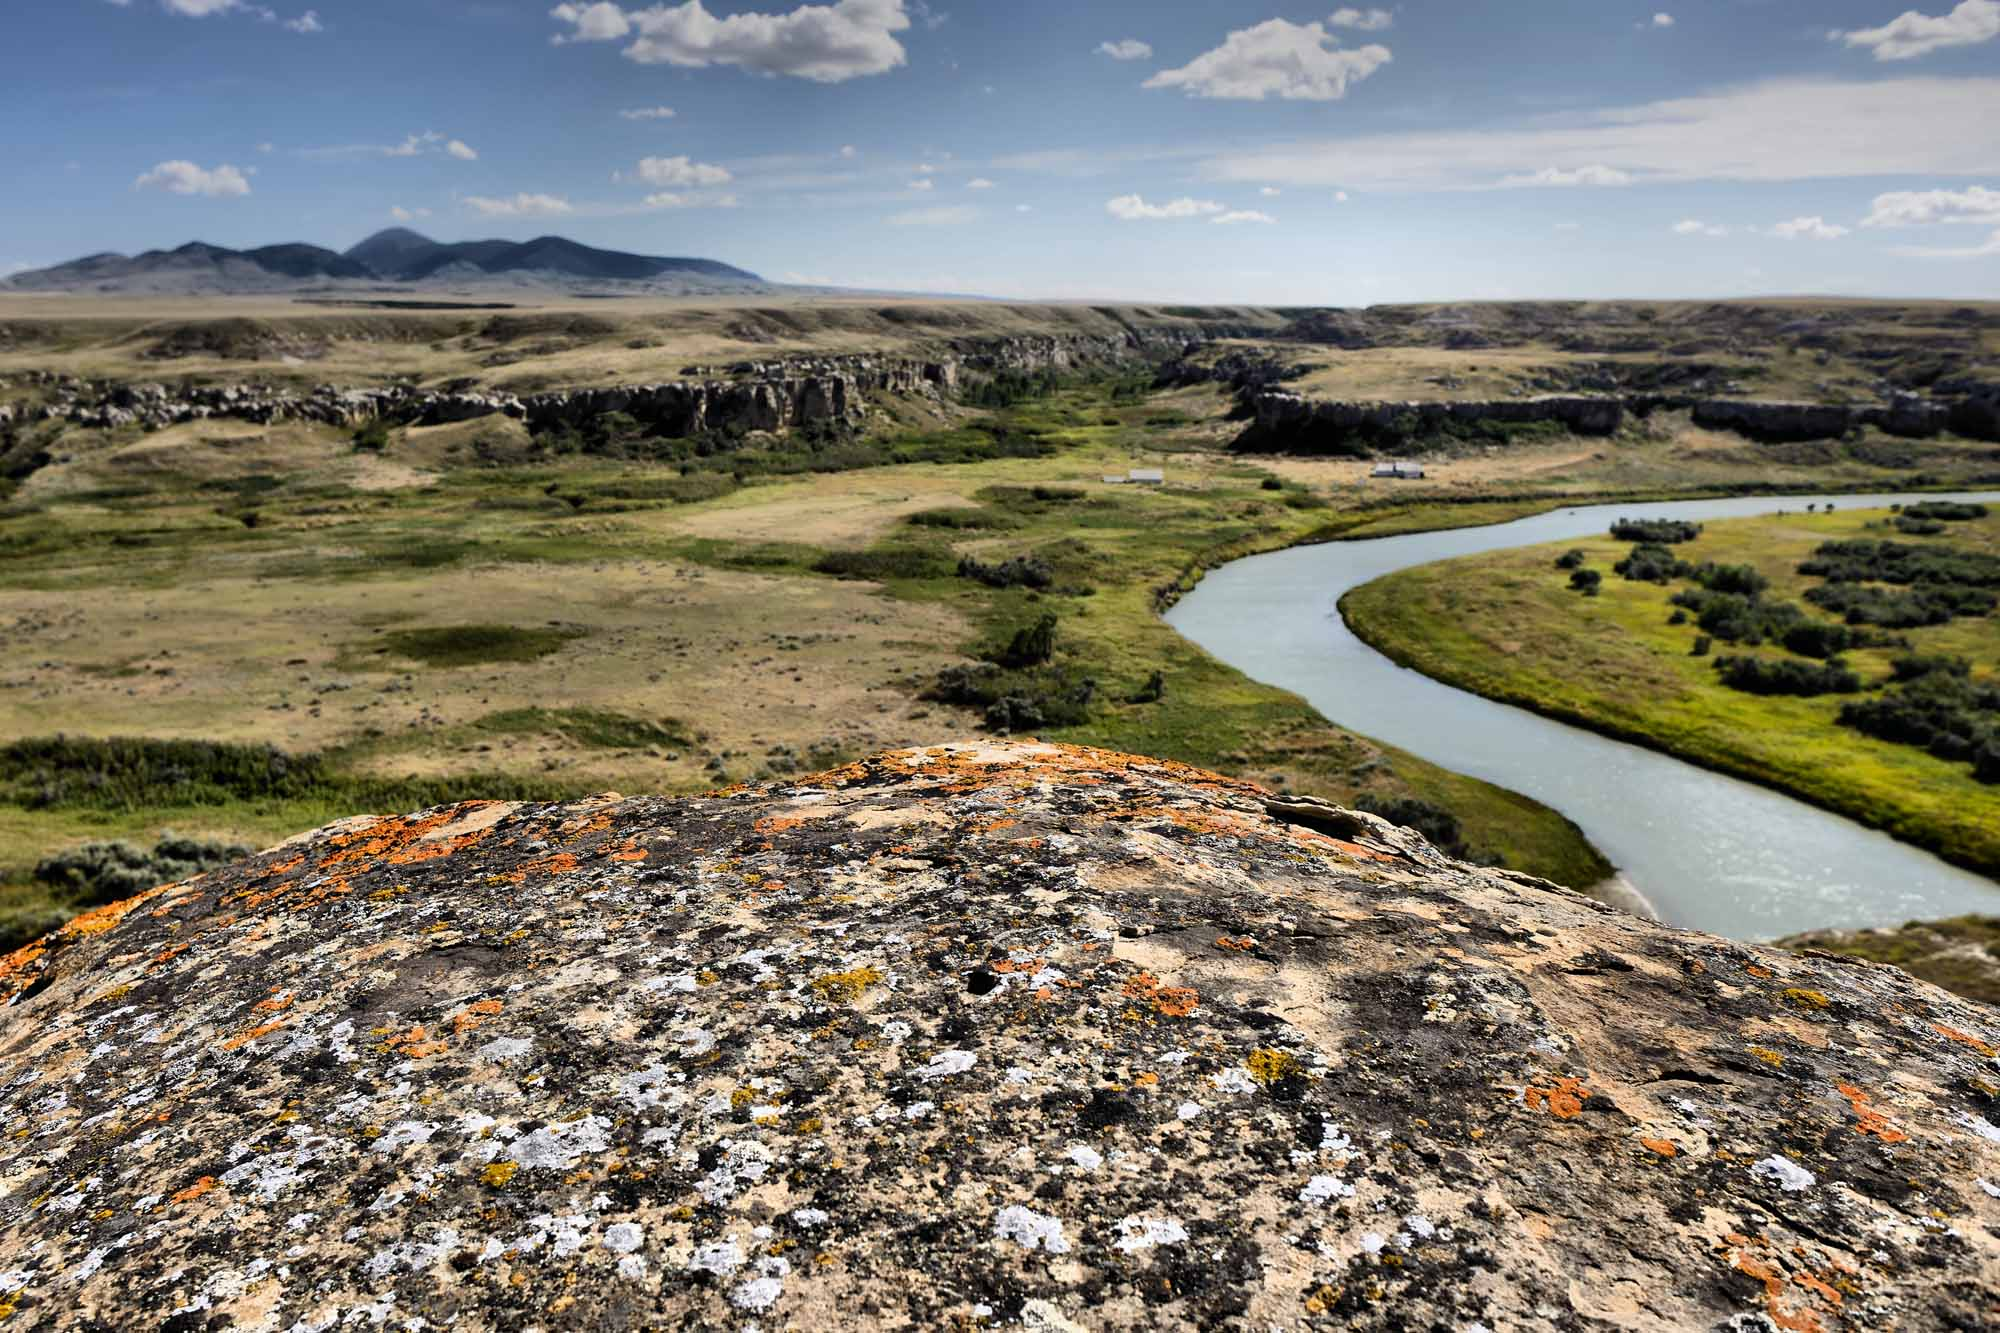 Writing-On-Stone Provincial Park